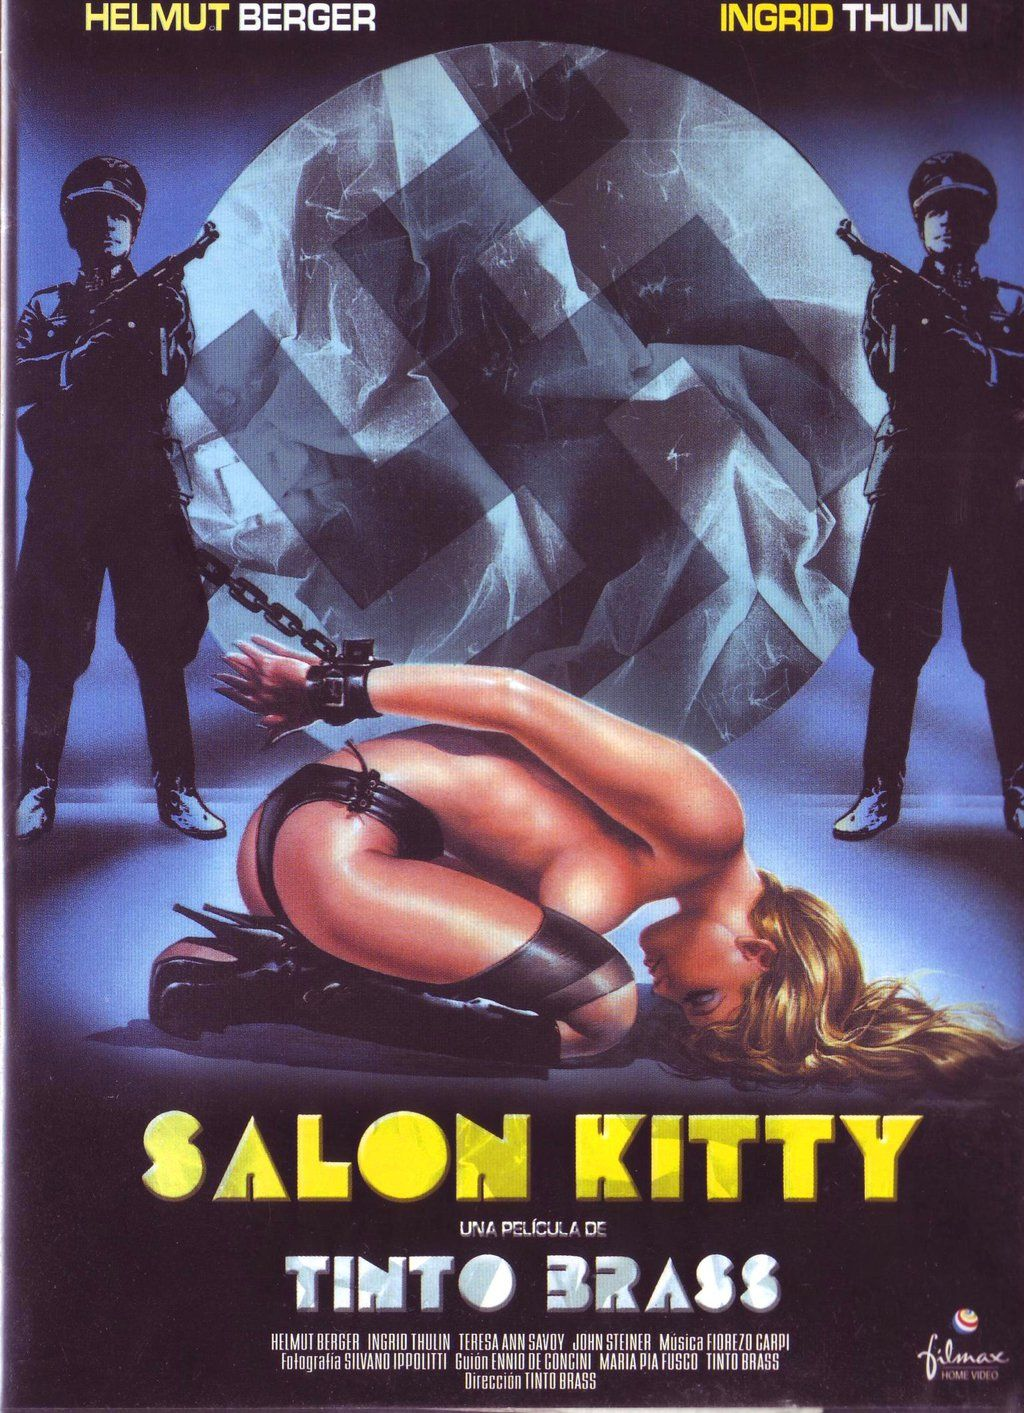 Salon Kitty Movie Posters Cinema Posters Full Movies Online Free